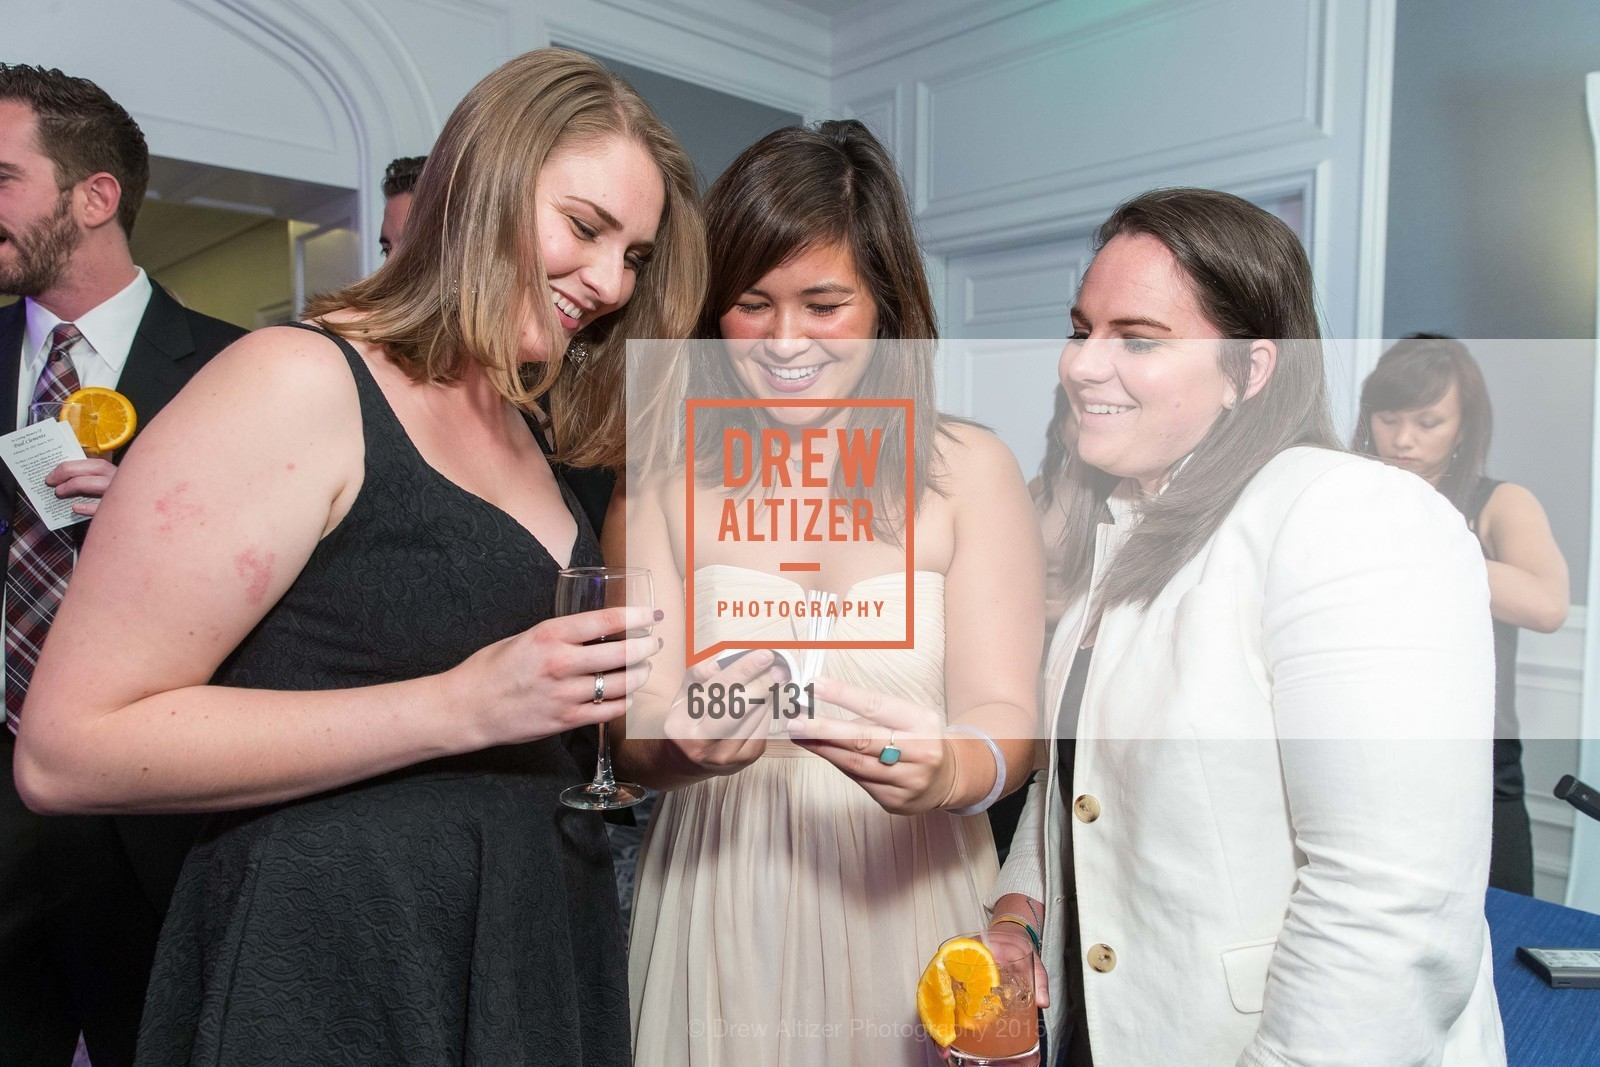 Tavia Norheim, Courtney Sandlin, Veronica Milliken, JUVENILE DIABETES RESEARCH FOUNDATION  Hope Gala, The Ritz-Carlton, May 29th, 2015,Drew Altizer, Drew Altizer Photography, full-service agency, private events, San Francisco photographer, photographer california